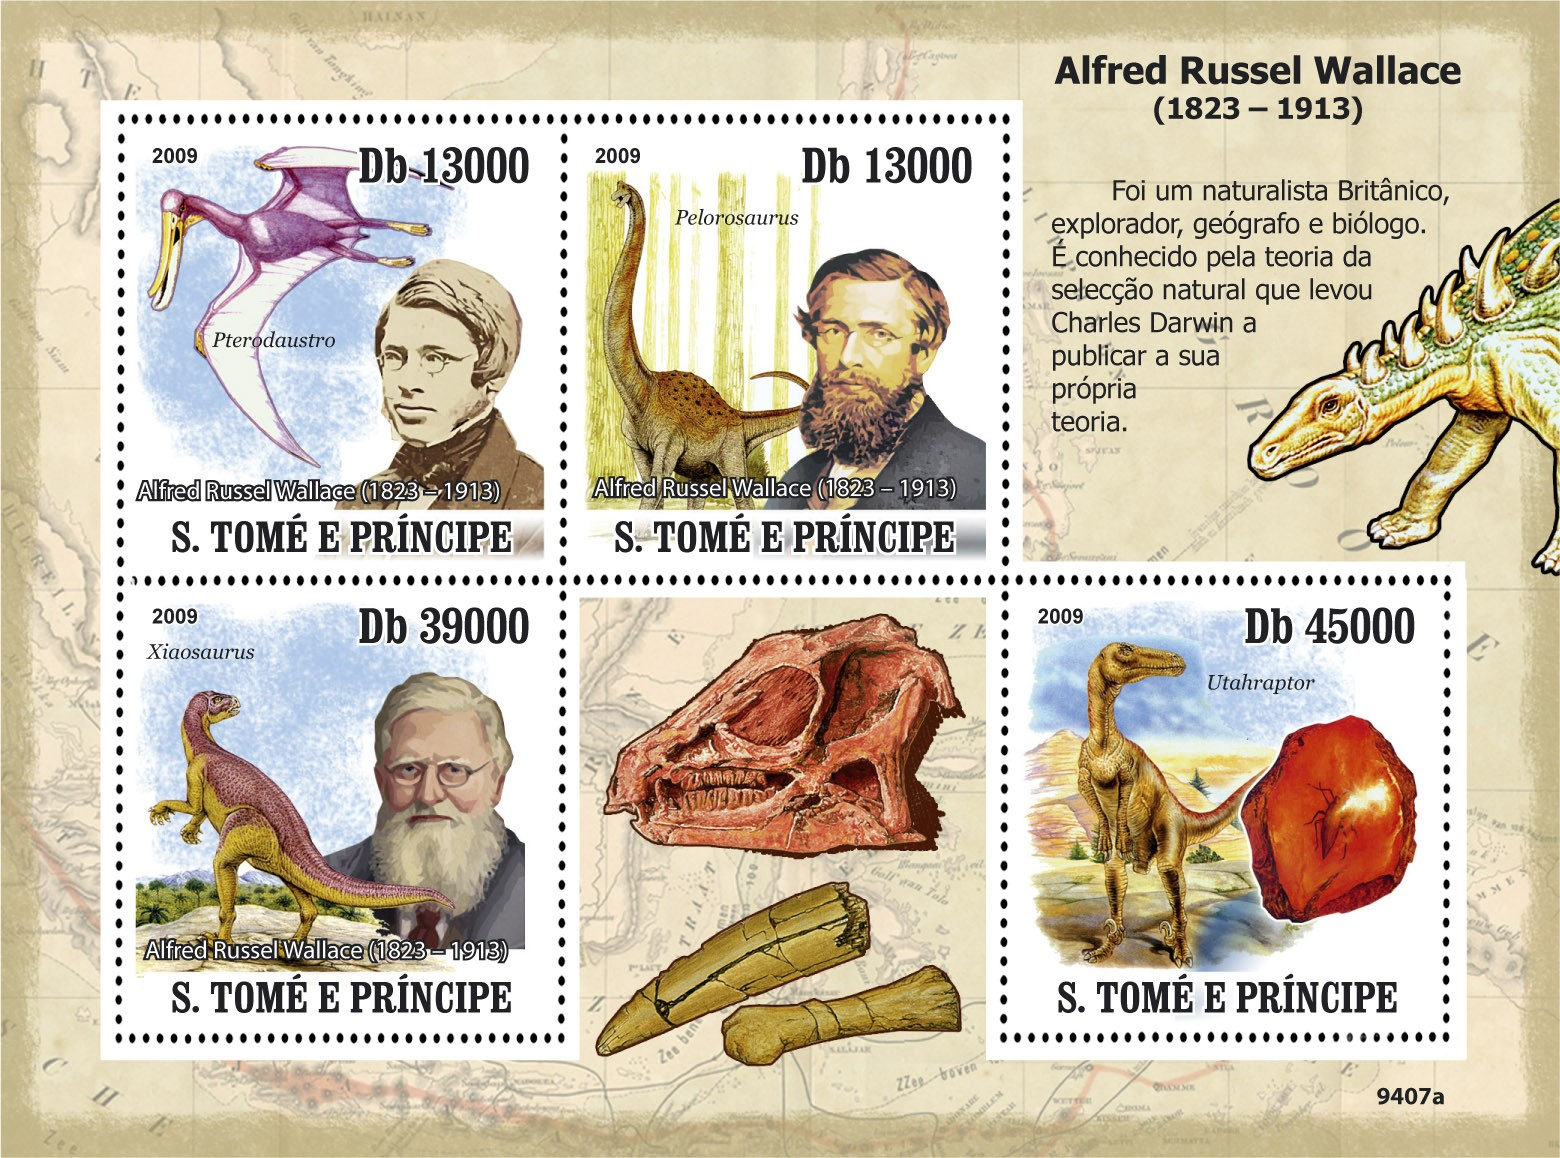 Dinozaurs , Alfred Russel Wallace ( 1823-1913 ) - Issue of Sao Tome and Principe postage stamps